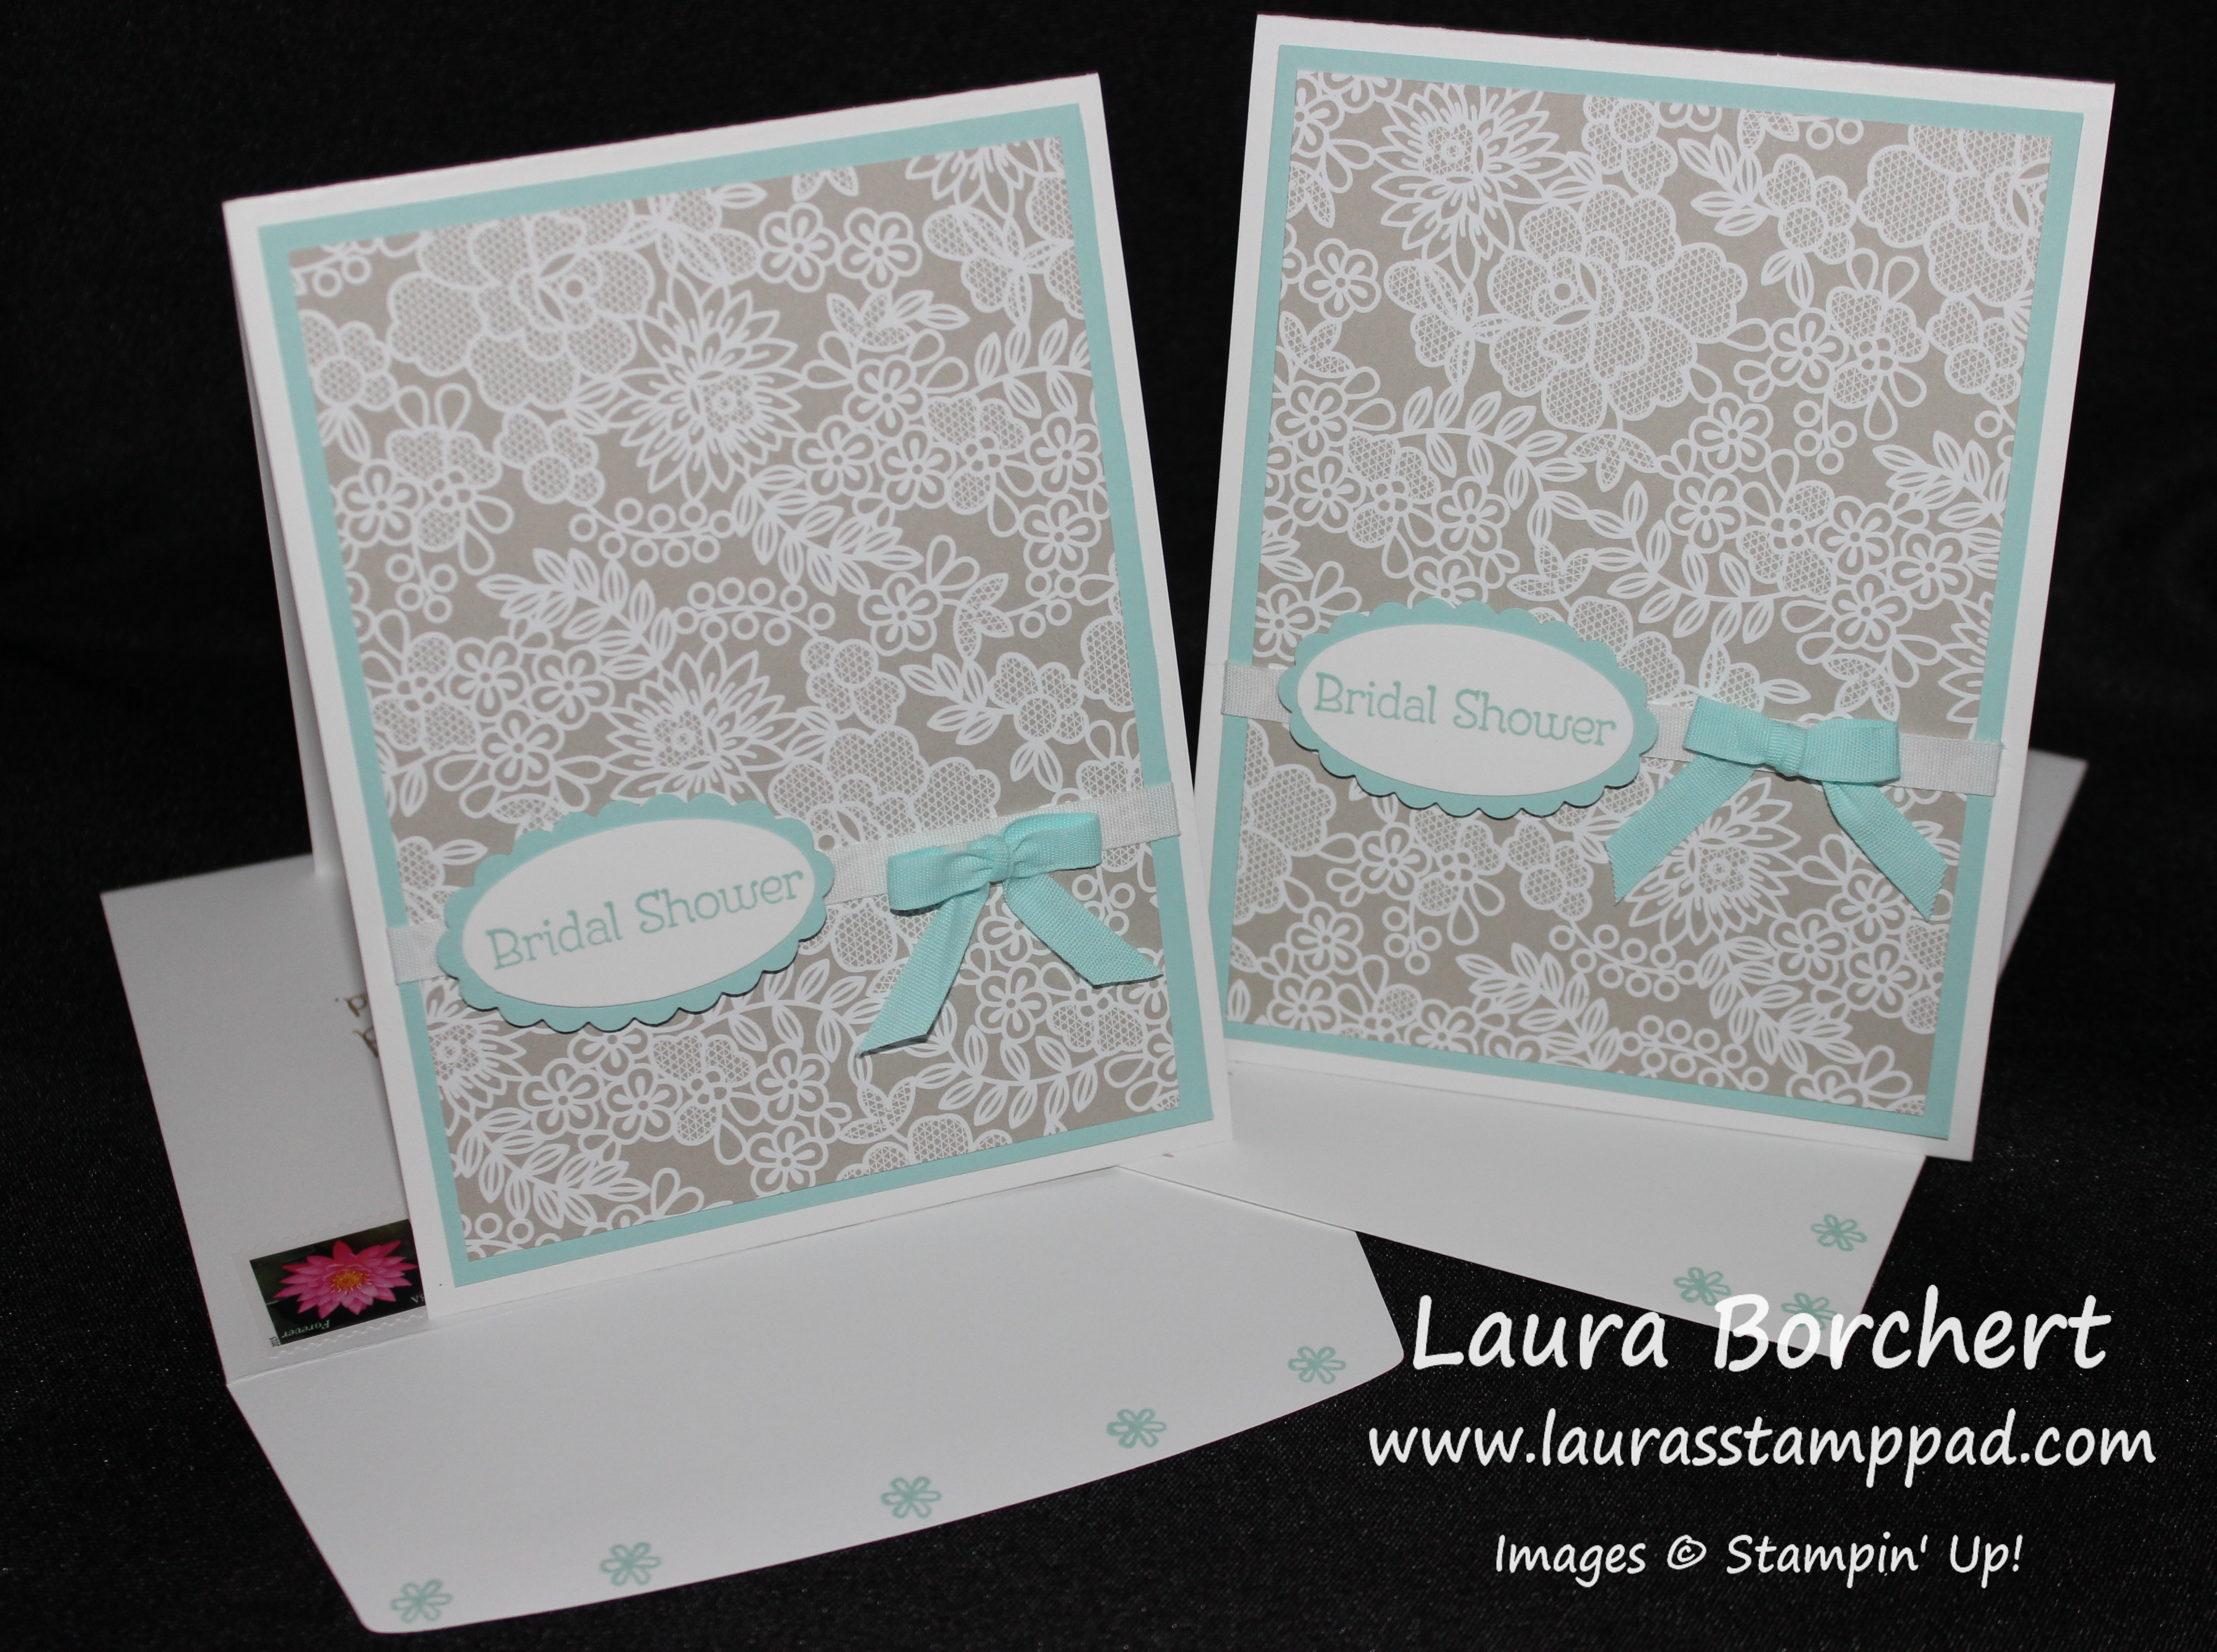 Stampin Up Bridal Shower Invitation - Wiring DATA •